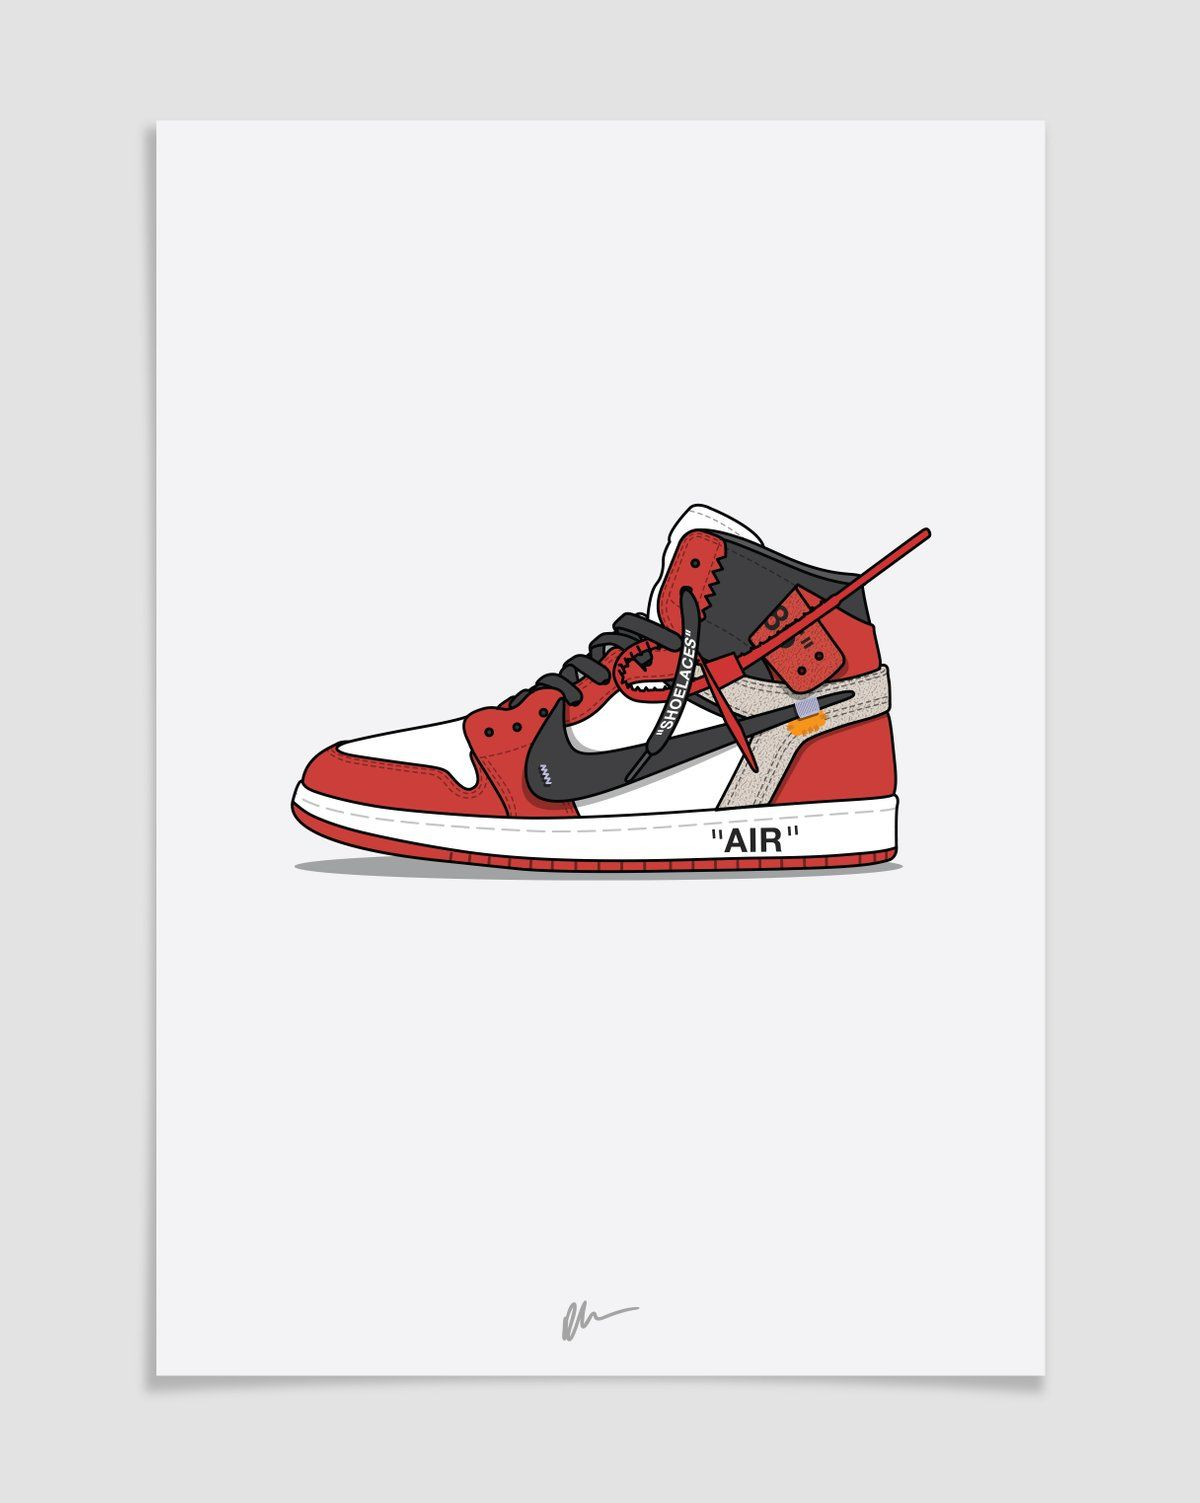 sale retailer 21877 27a2c Image of ☆ NEW ☆ The Ten - Off-White Air Jordan 1 Chicago